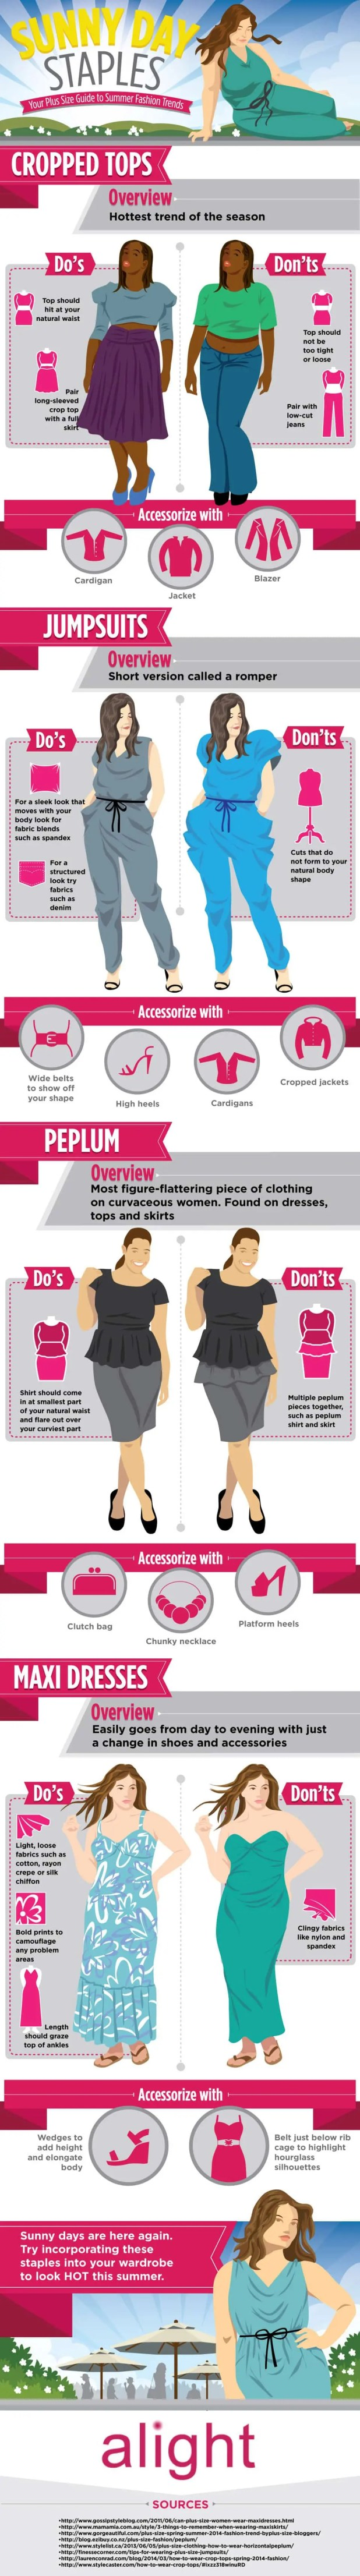 Plus Size Guide to Summer Fashion Trends